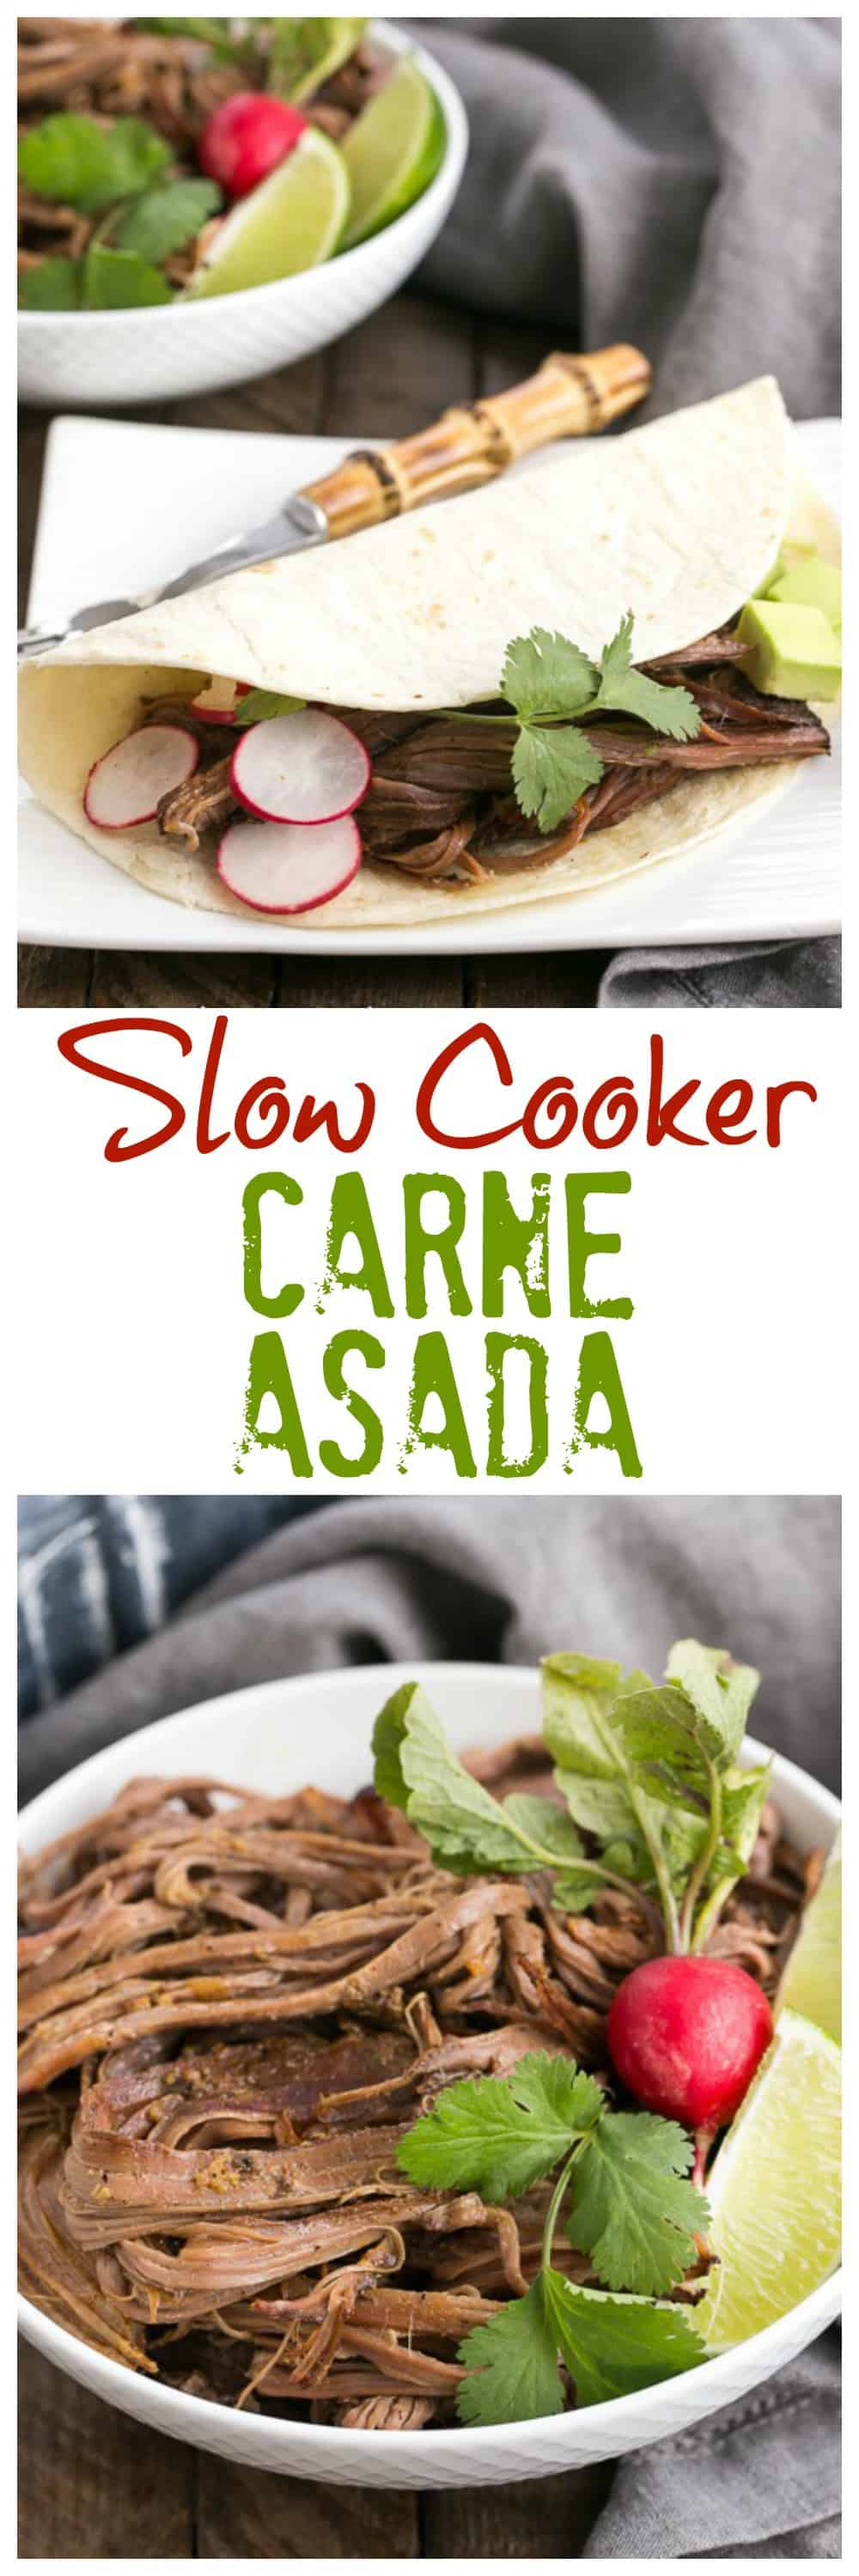 Slow Cooker Carne Asada | The classic Latin dish made in a slow cooker!